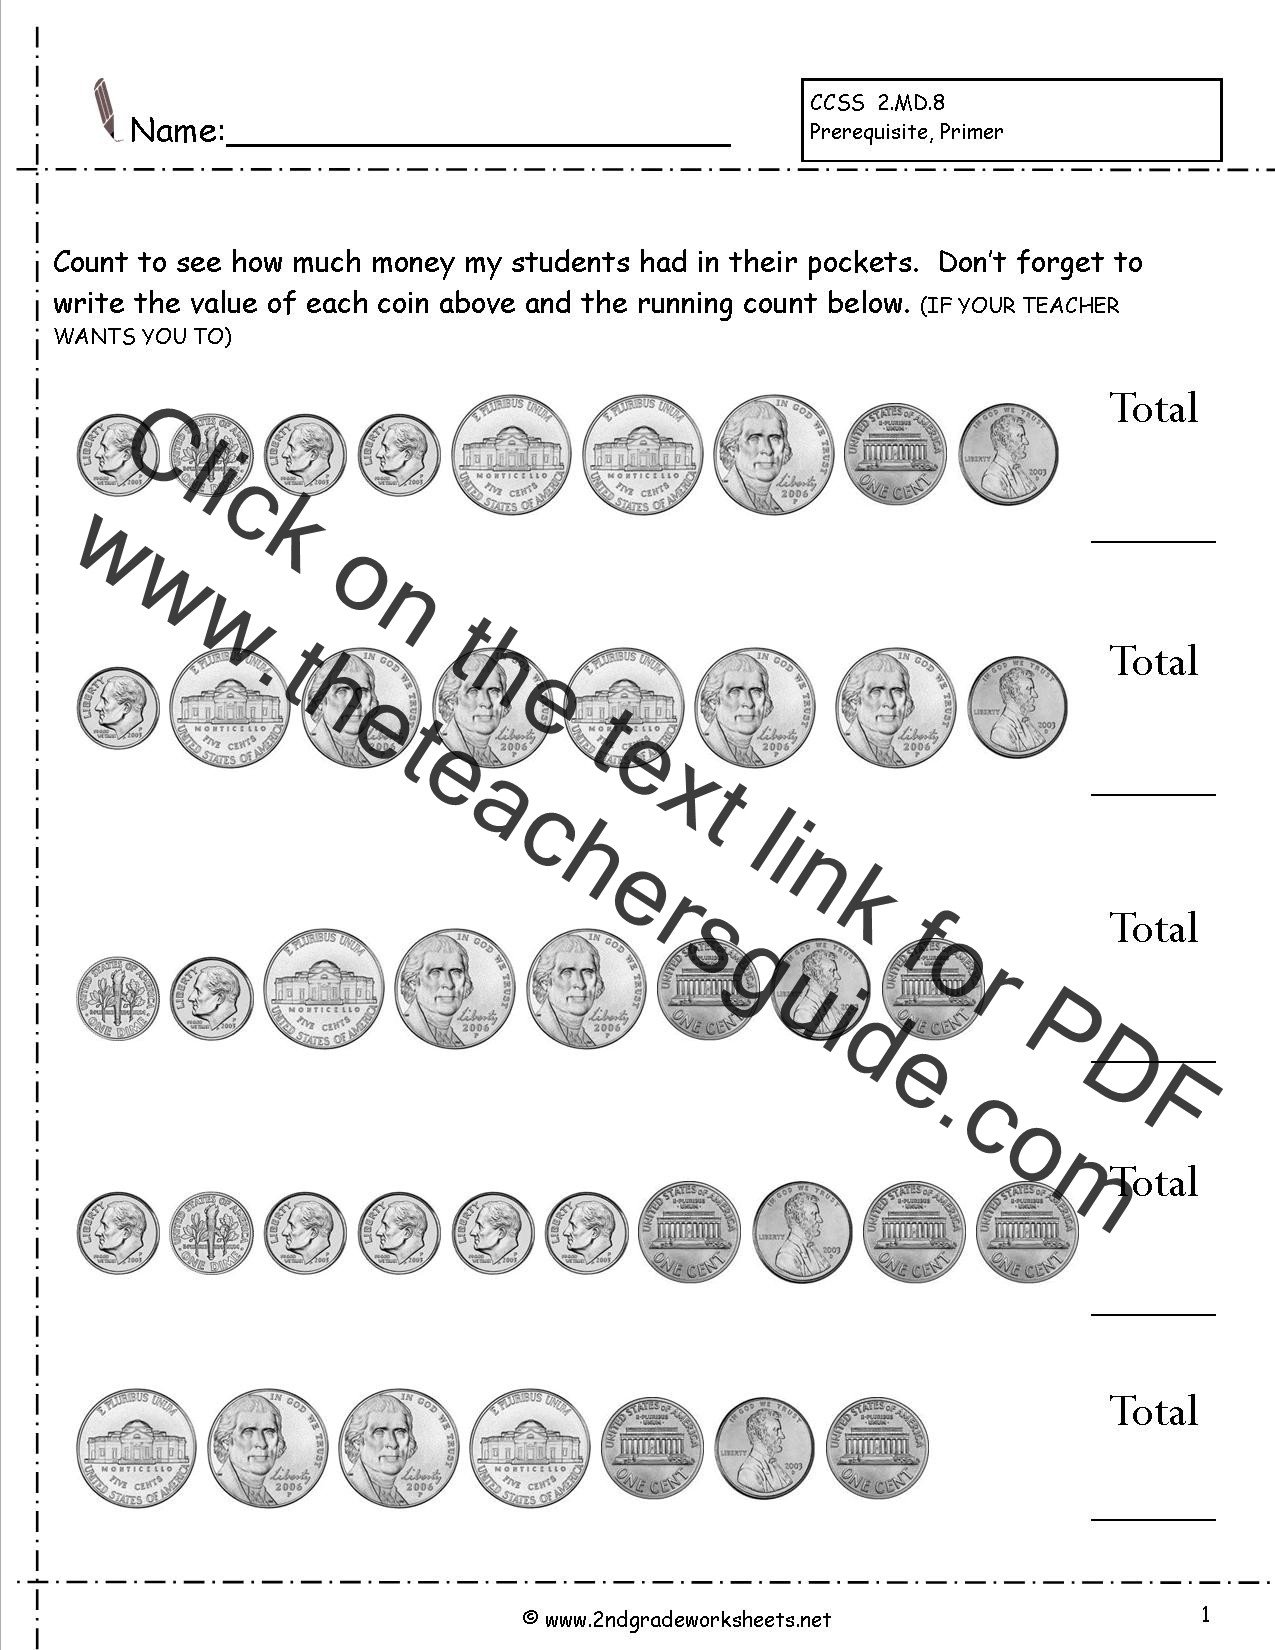 Counting Coins Worksheets 2nd Grade Counting Coins and Money Worksheets and Printouts